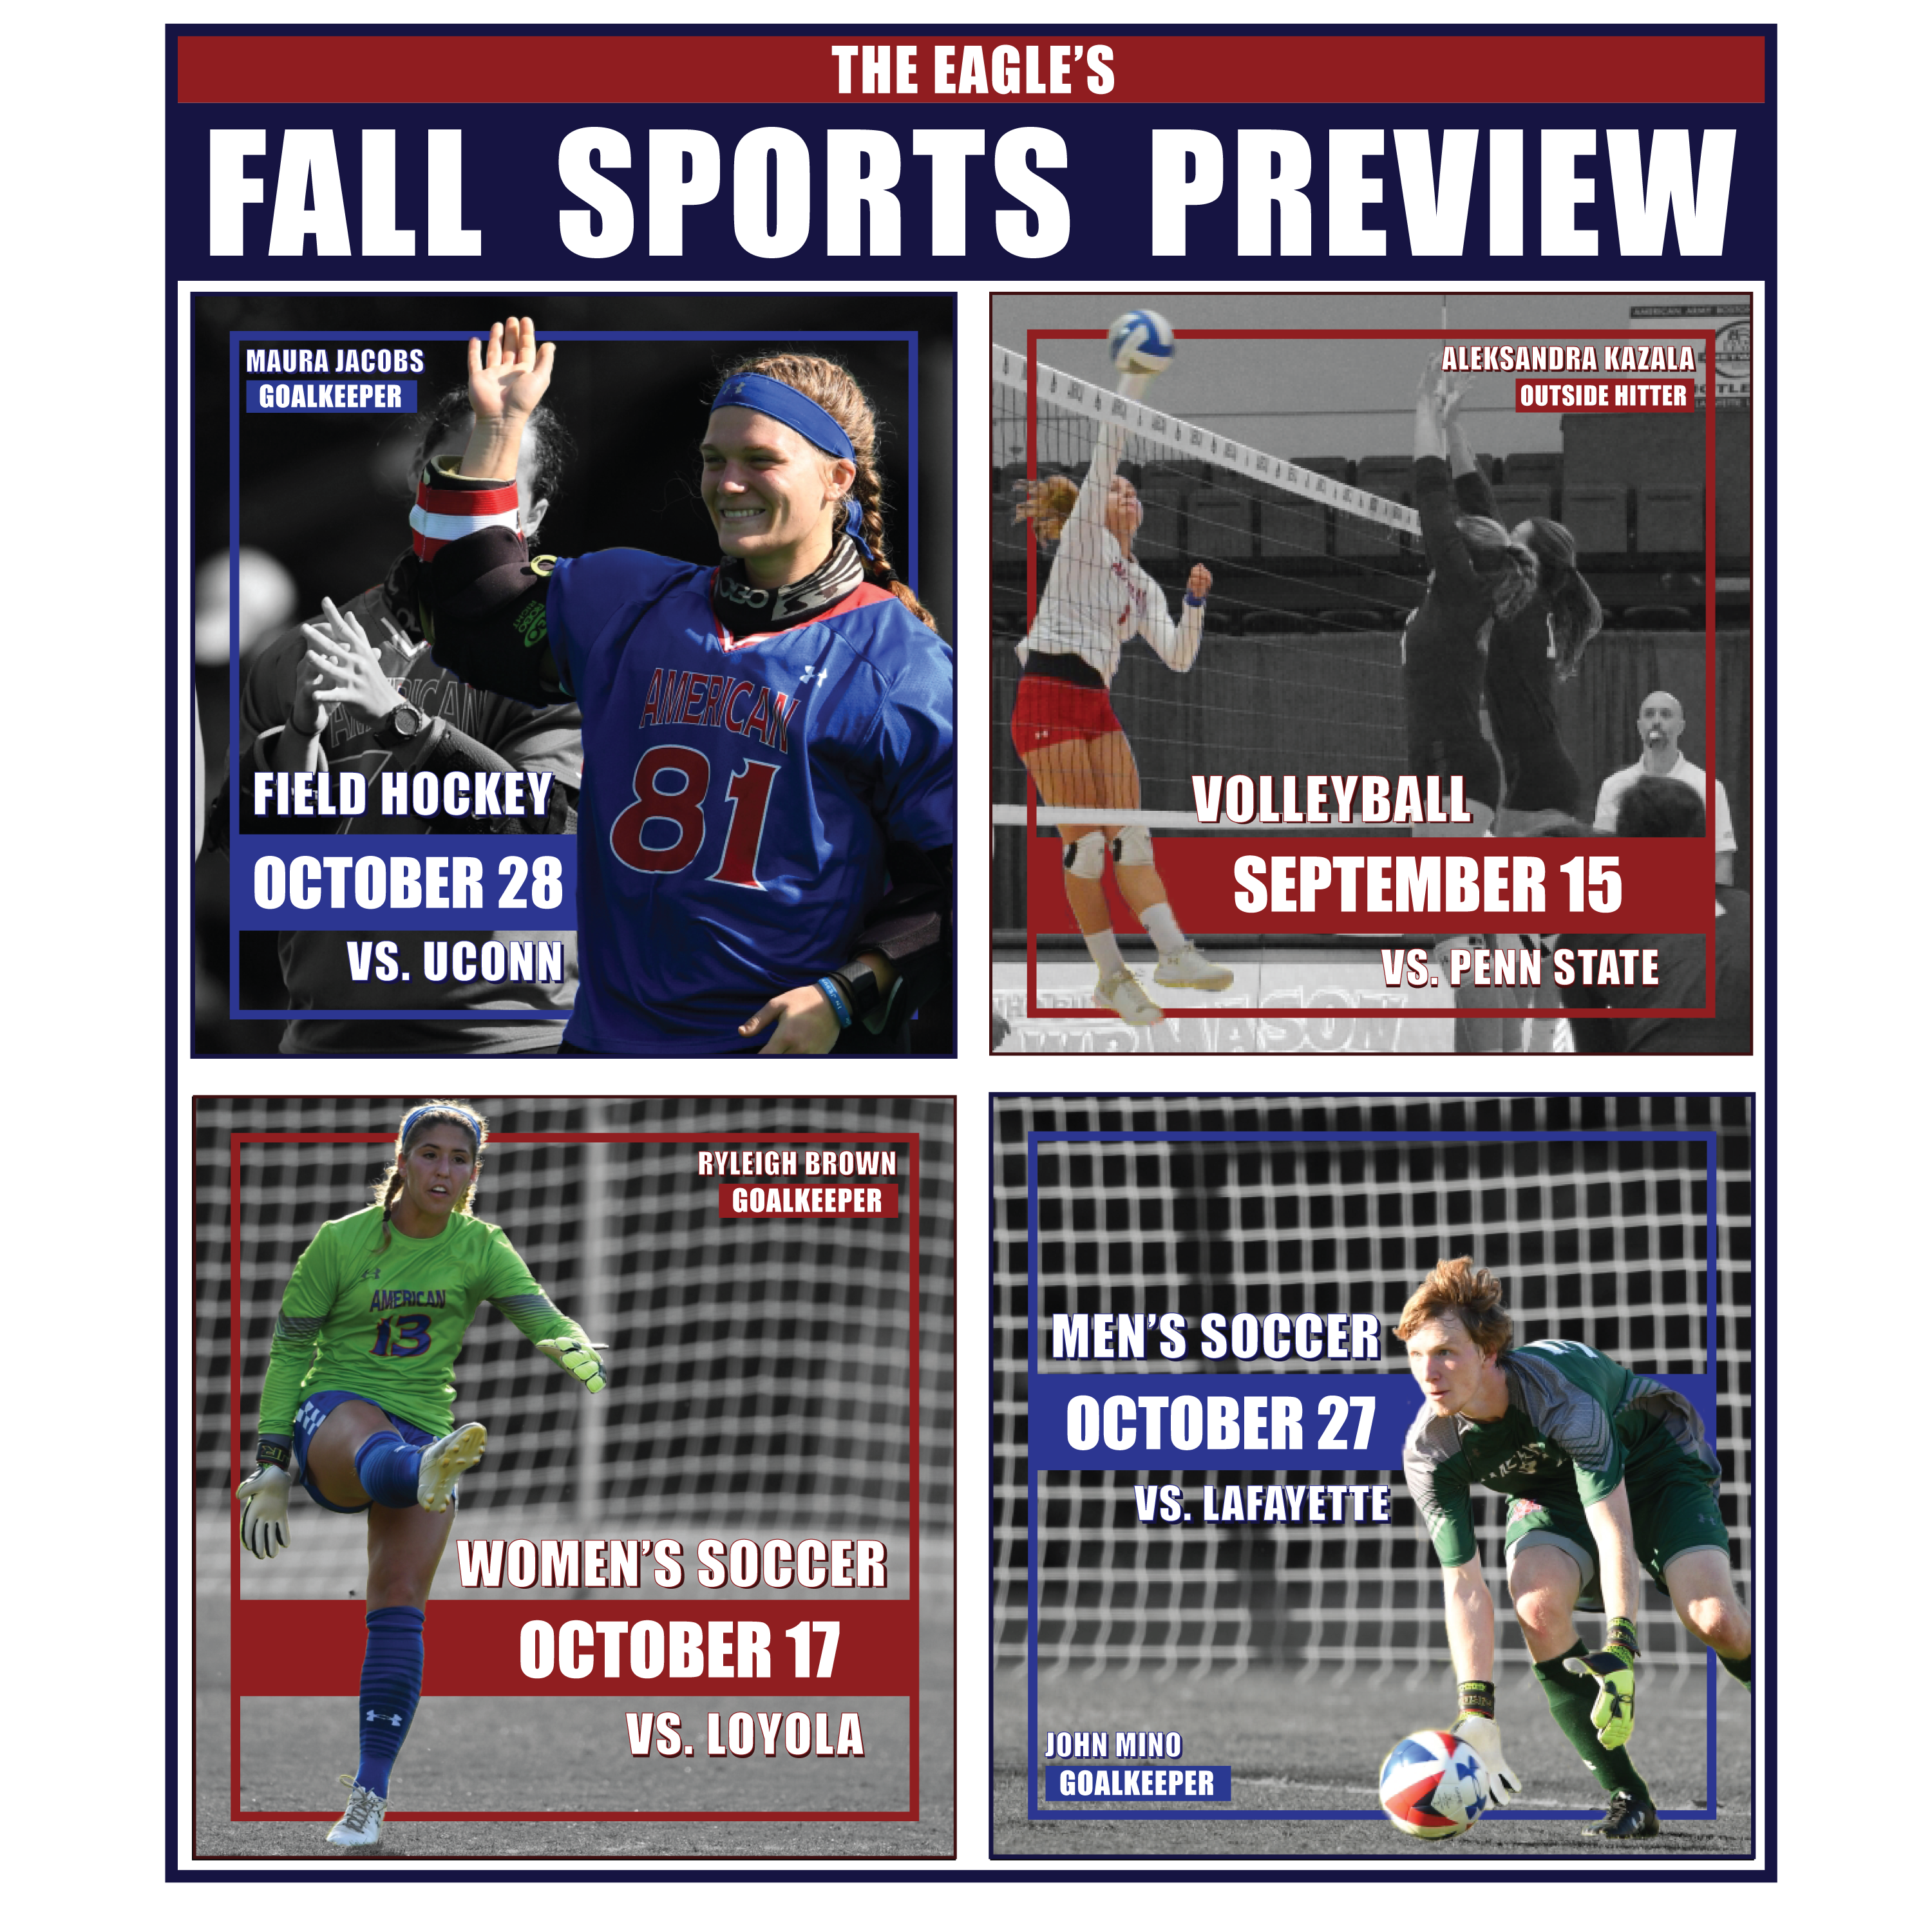 What to watch out for from AU volleyball, field hockey and soccer this fall